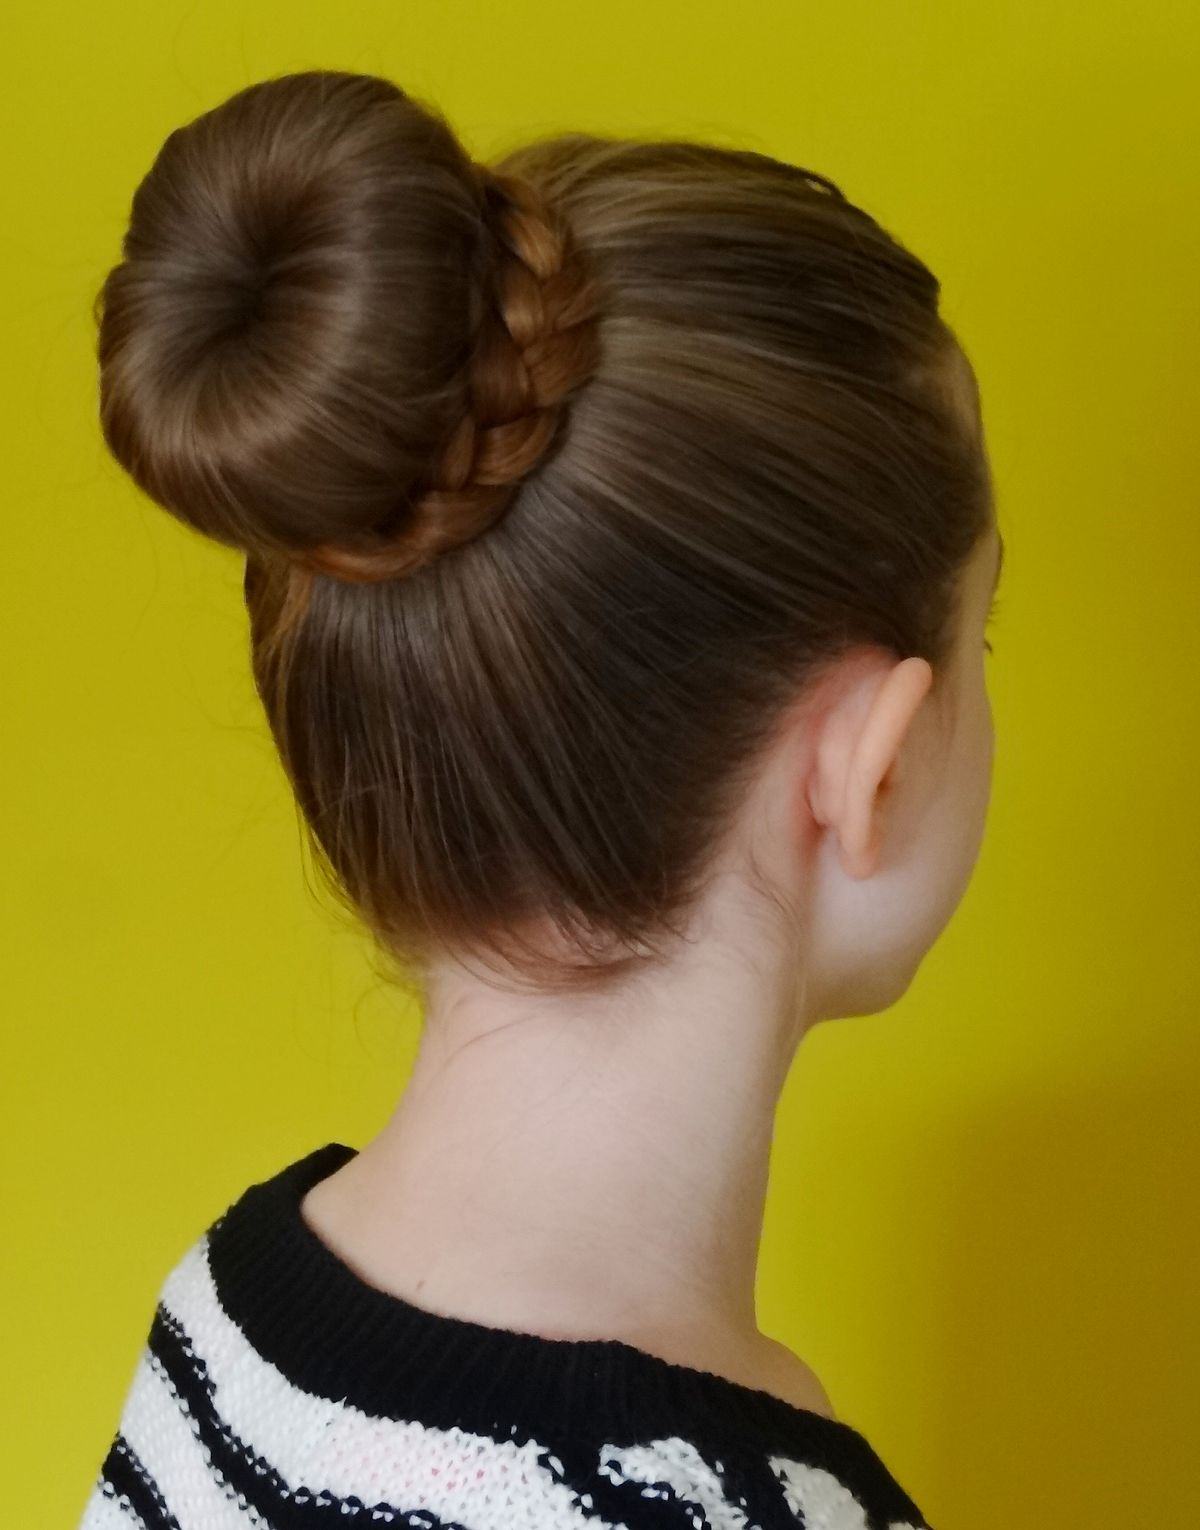 Bun (hairstyle) - Wikipedia